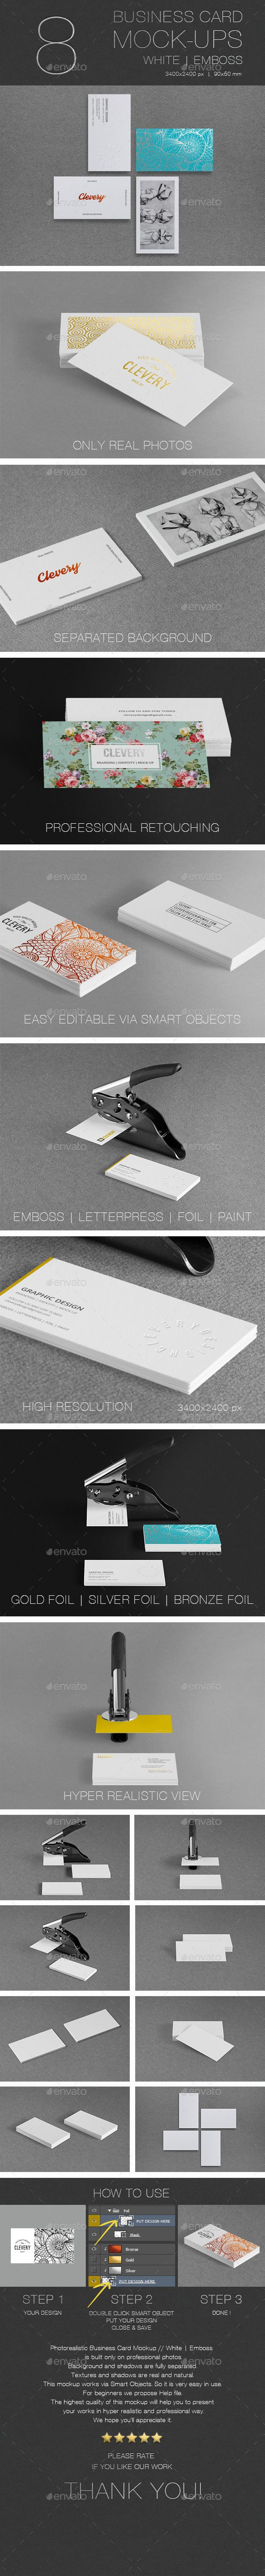 Photorealistic business card mockup white emboss mock up photorealistic business card mockup white emboss photoshop psd clevery logo available here colourmoves